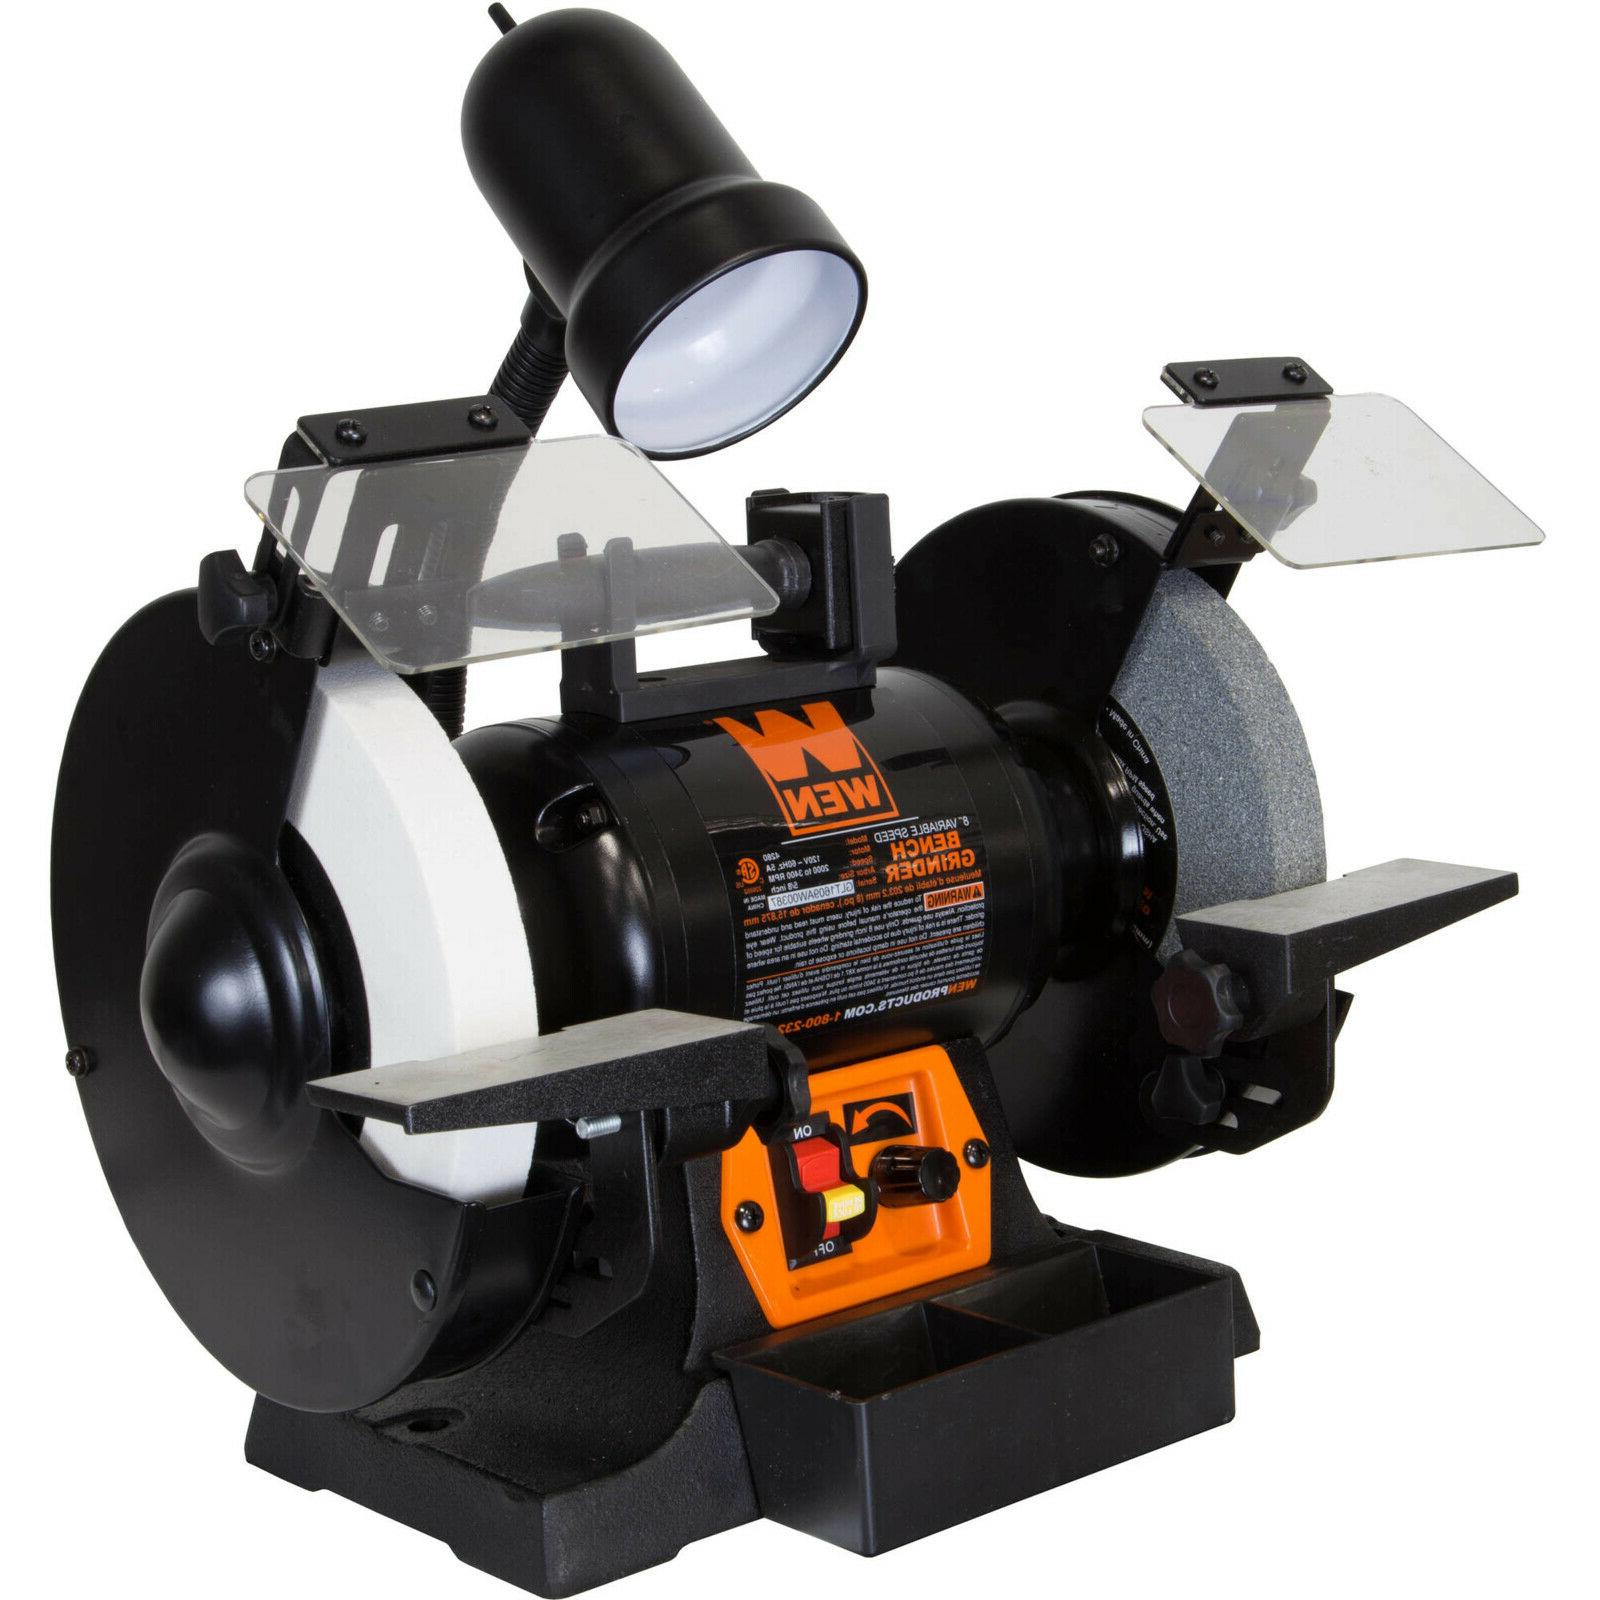 8 bench grinder variable speed